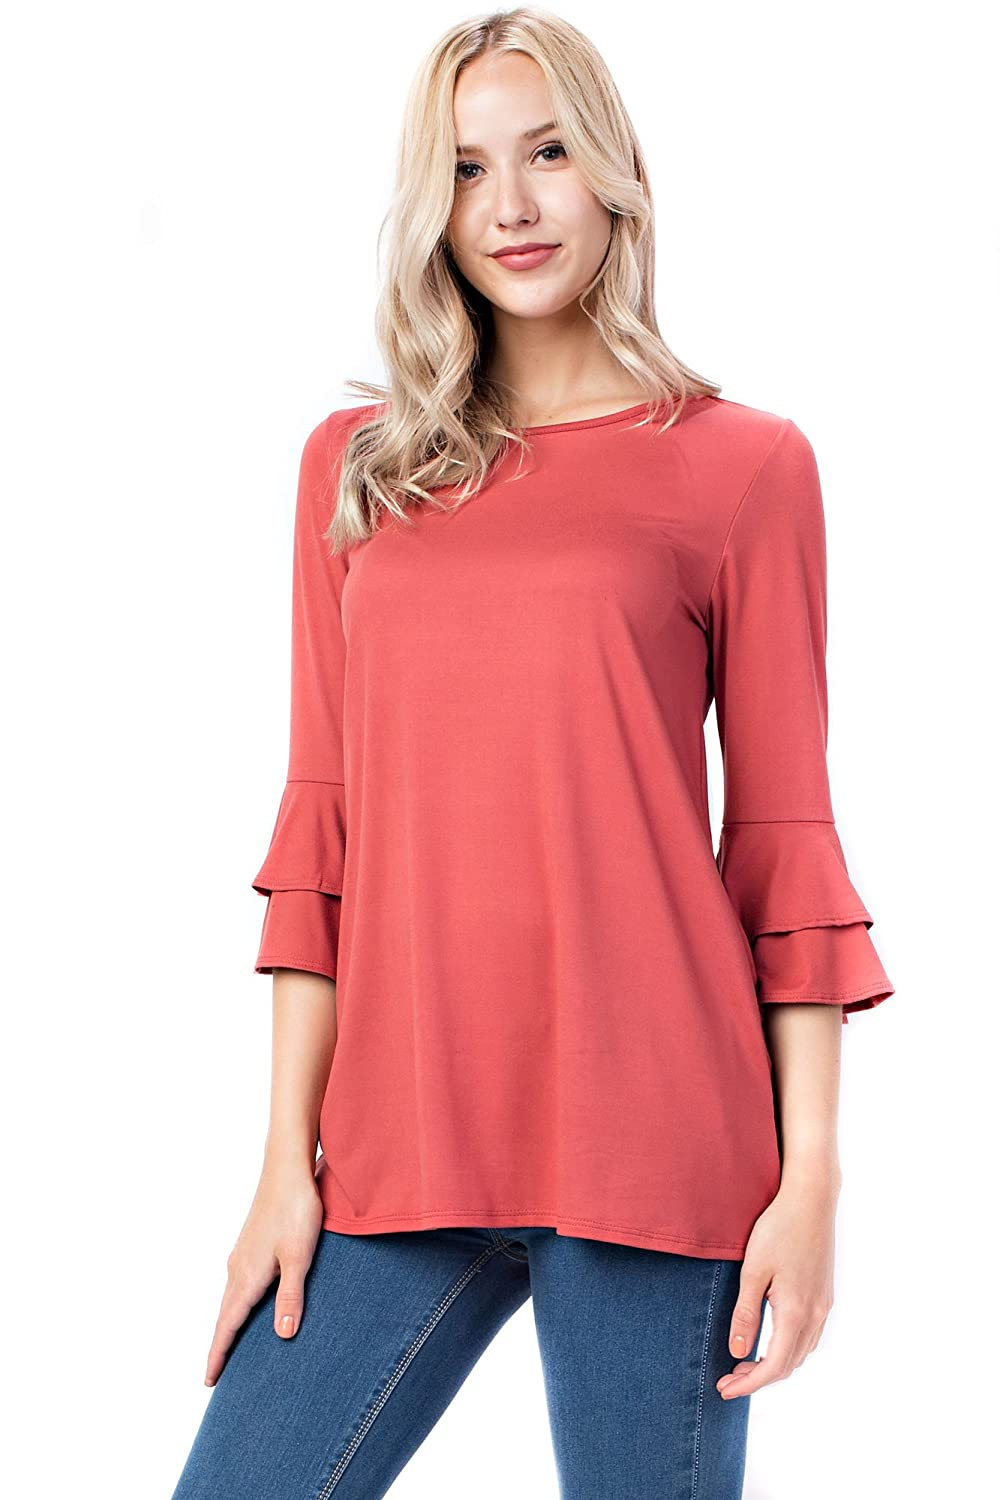 Coral Allora Betsy Red Couture Women's Ruffled 3 4 Sleeve Tunic (S3X)